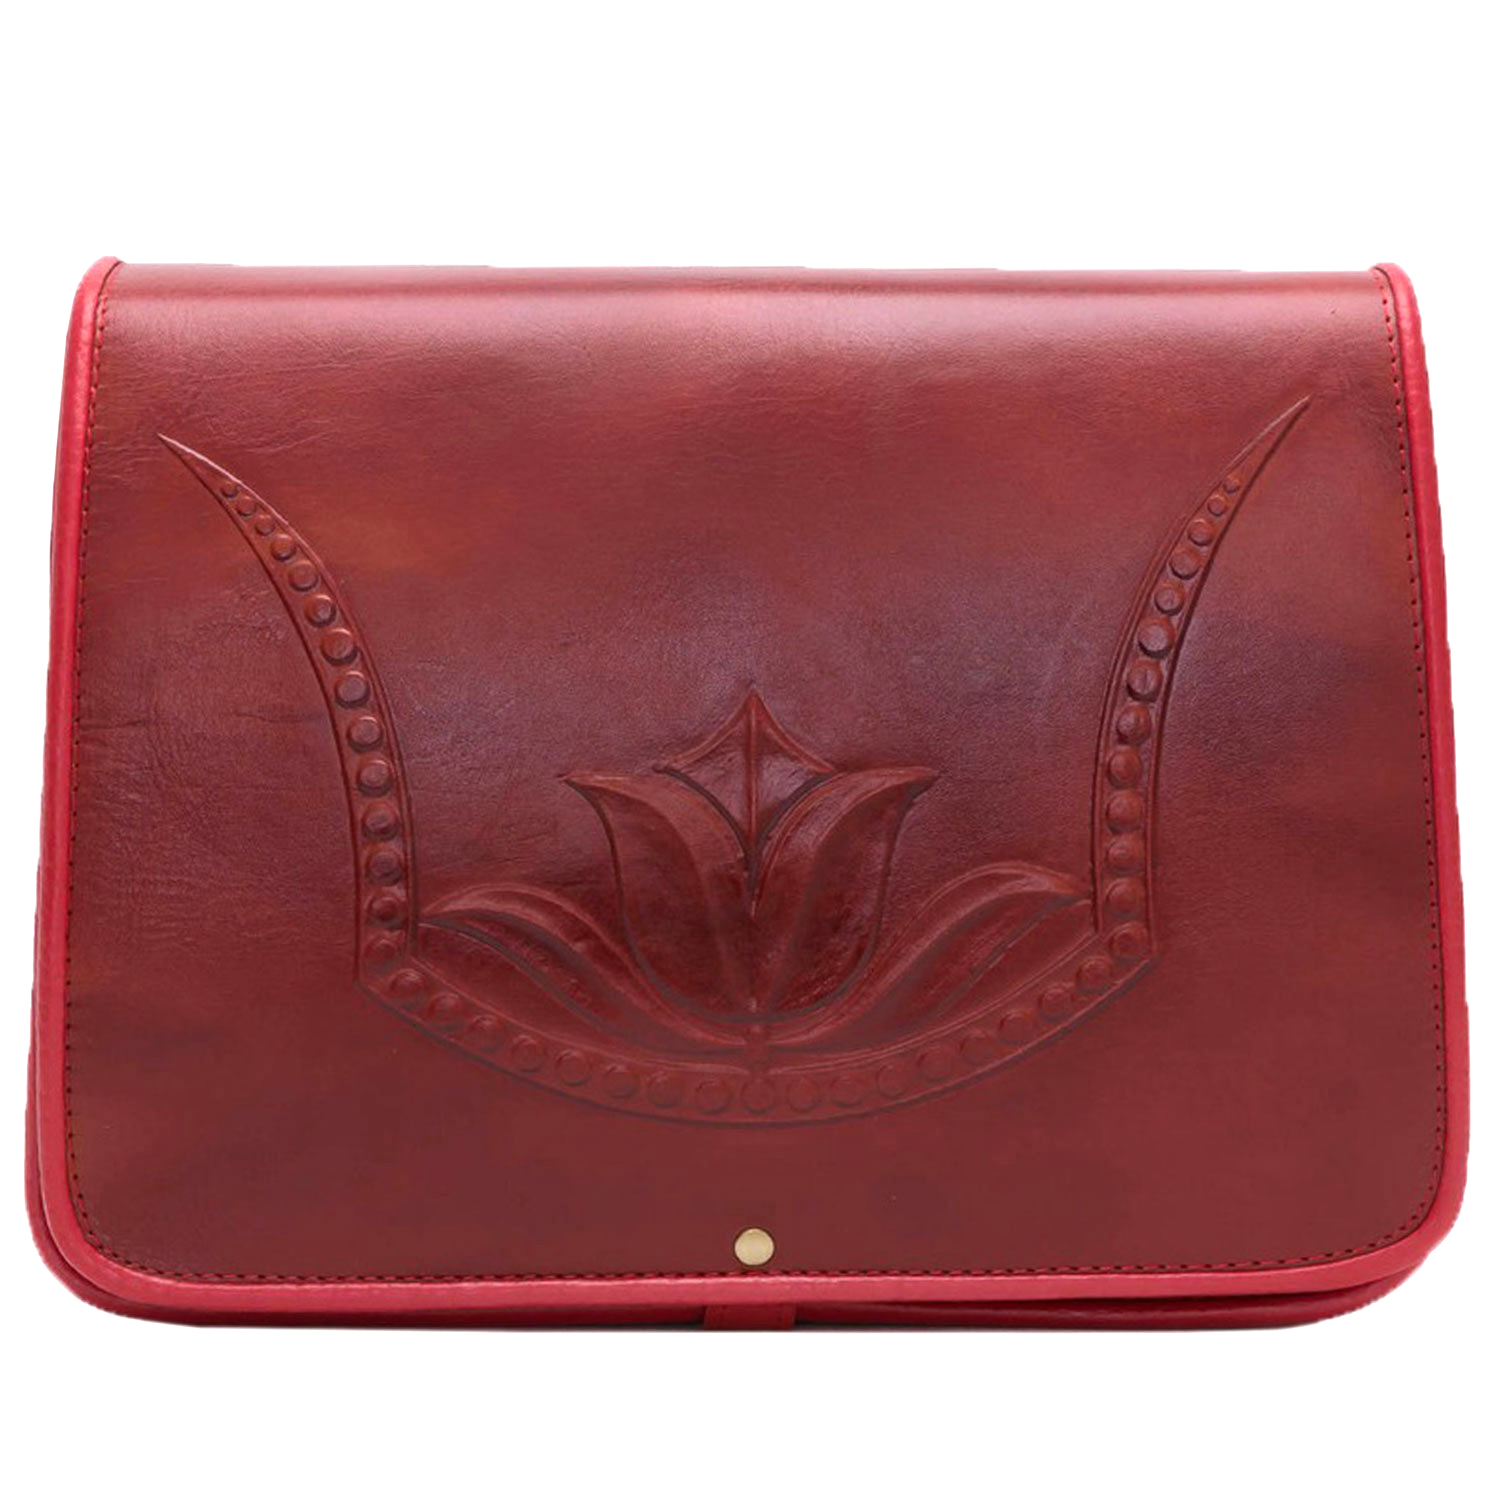 Red tulip flower pattern genuine leather women bag